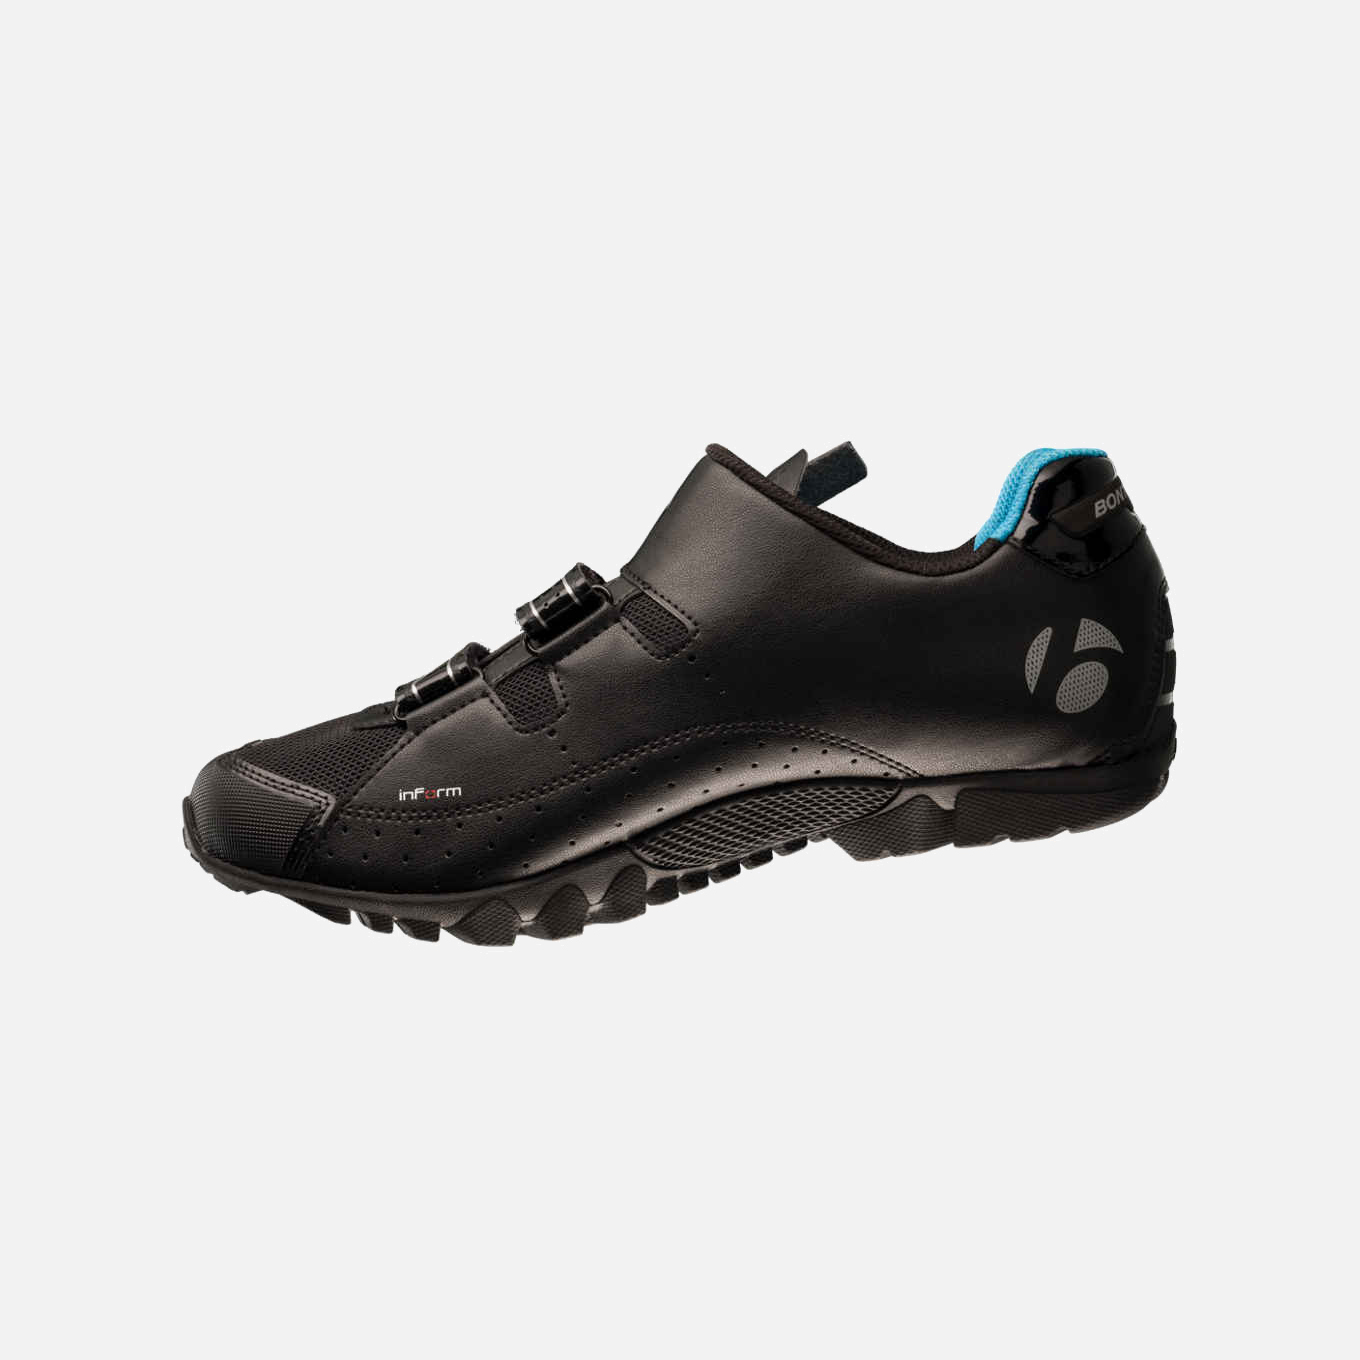 13689_A_5_Igneo_Womens_MTB_Shoe